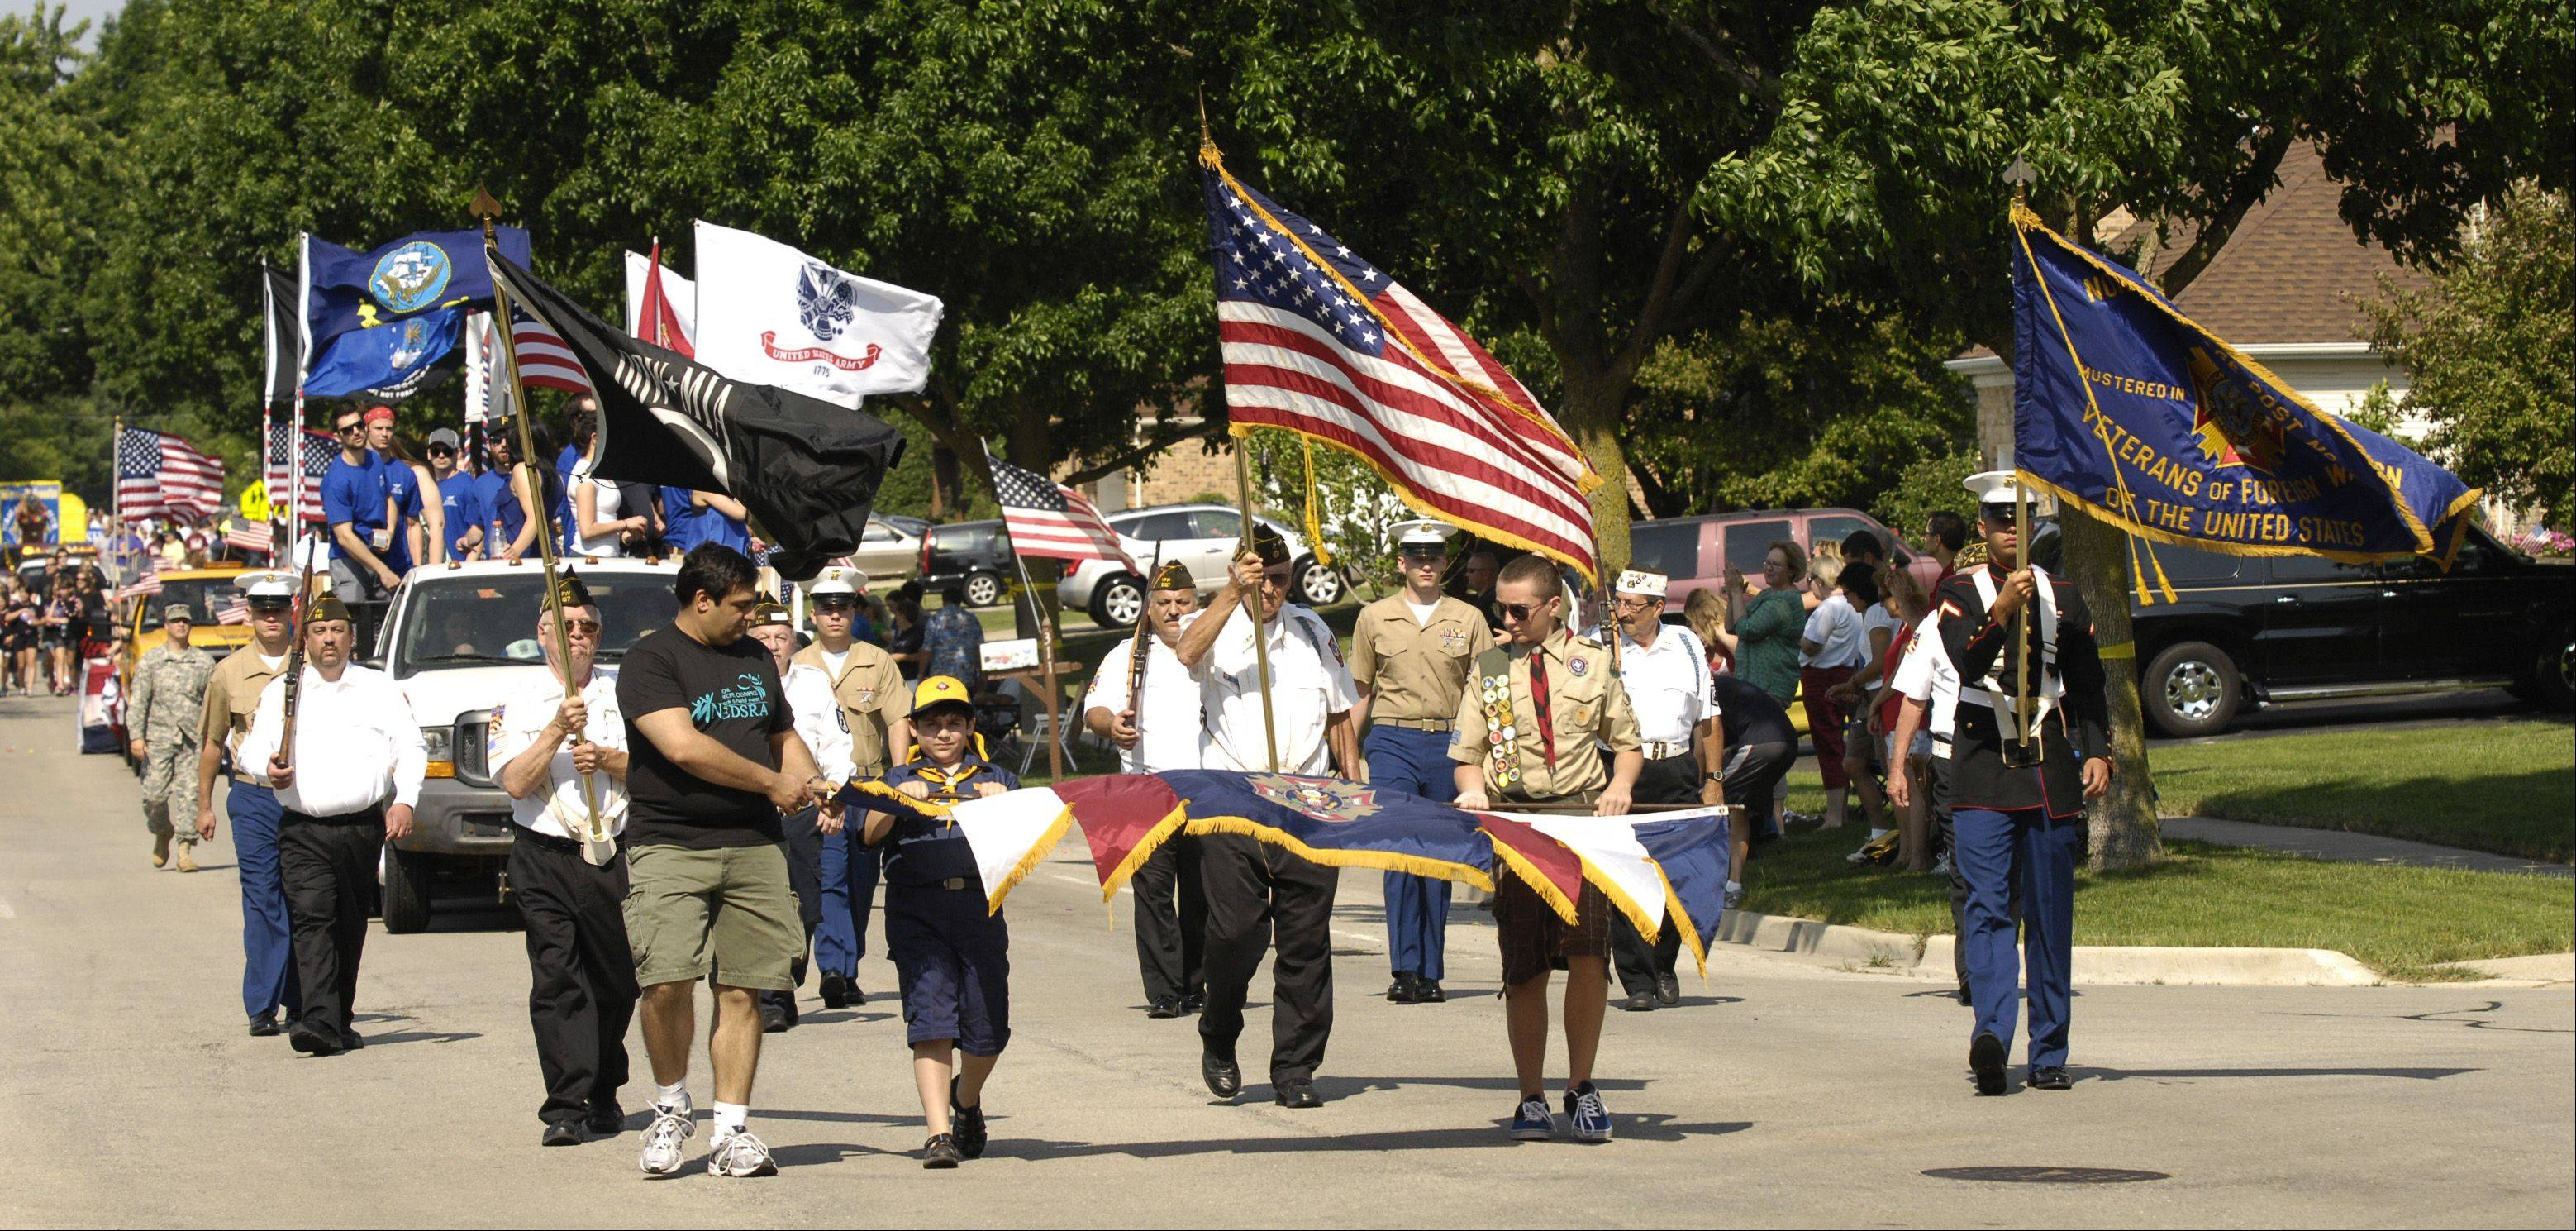 Members of VFW Post 5167 march in the Itasca Memorial Day parade on Monday.